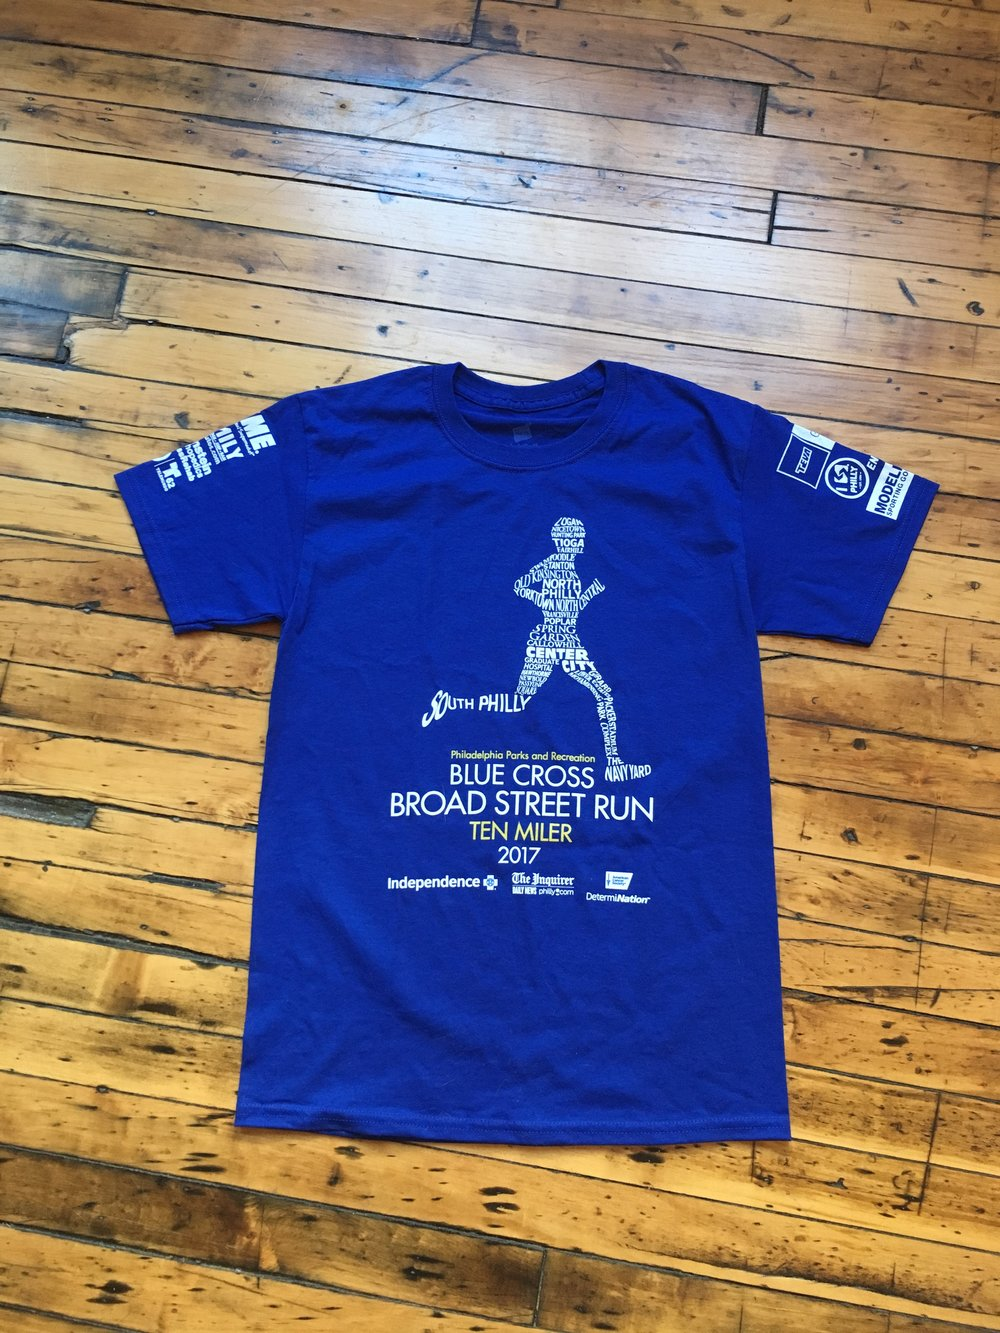 Nice design. Men's sizes only despite the fact that the majority of runners were women